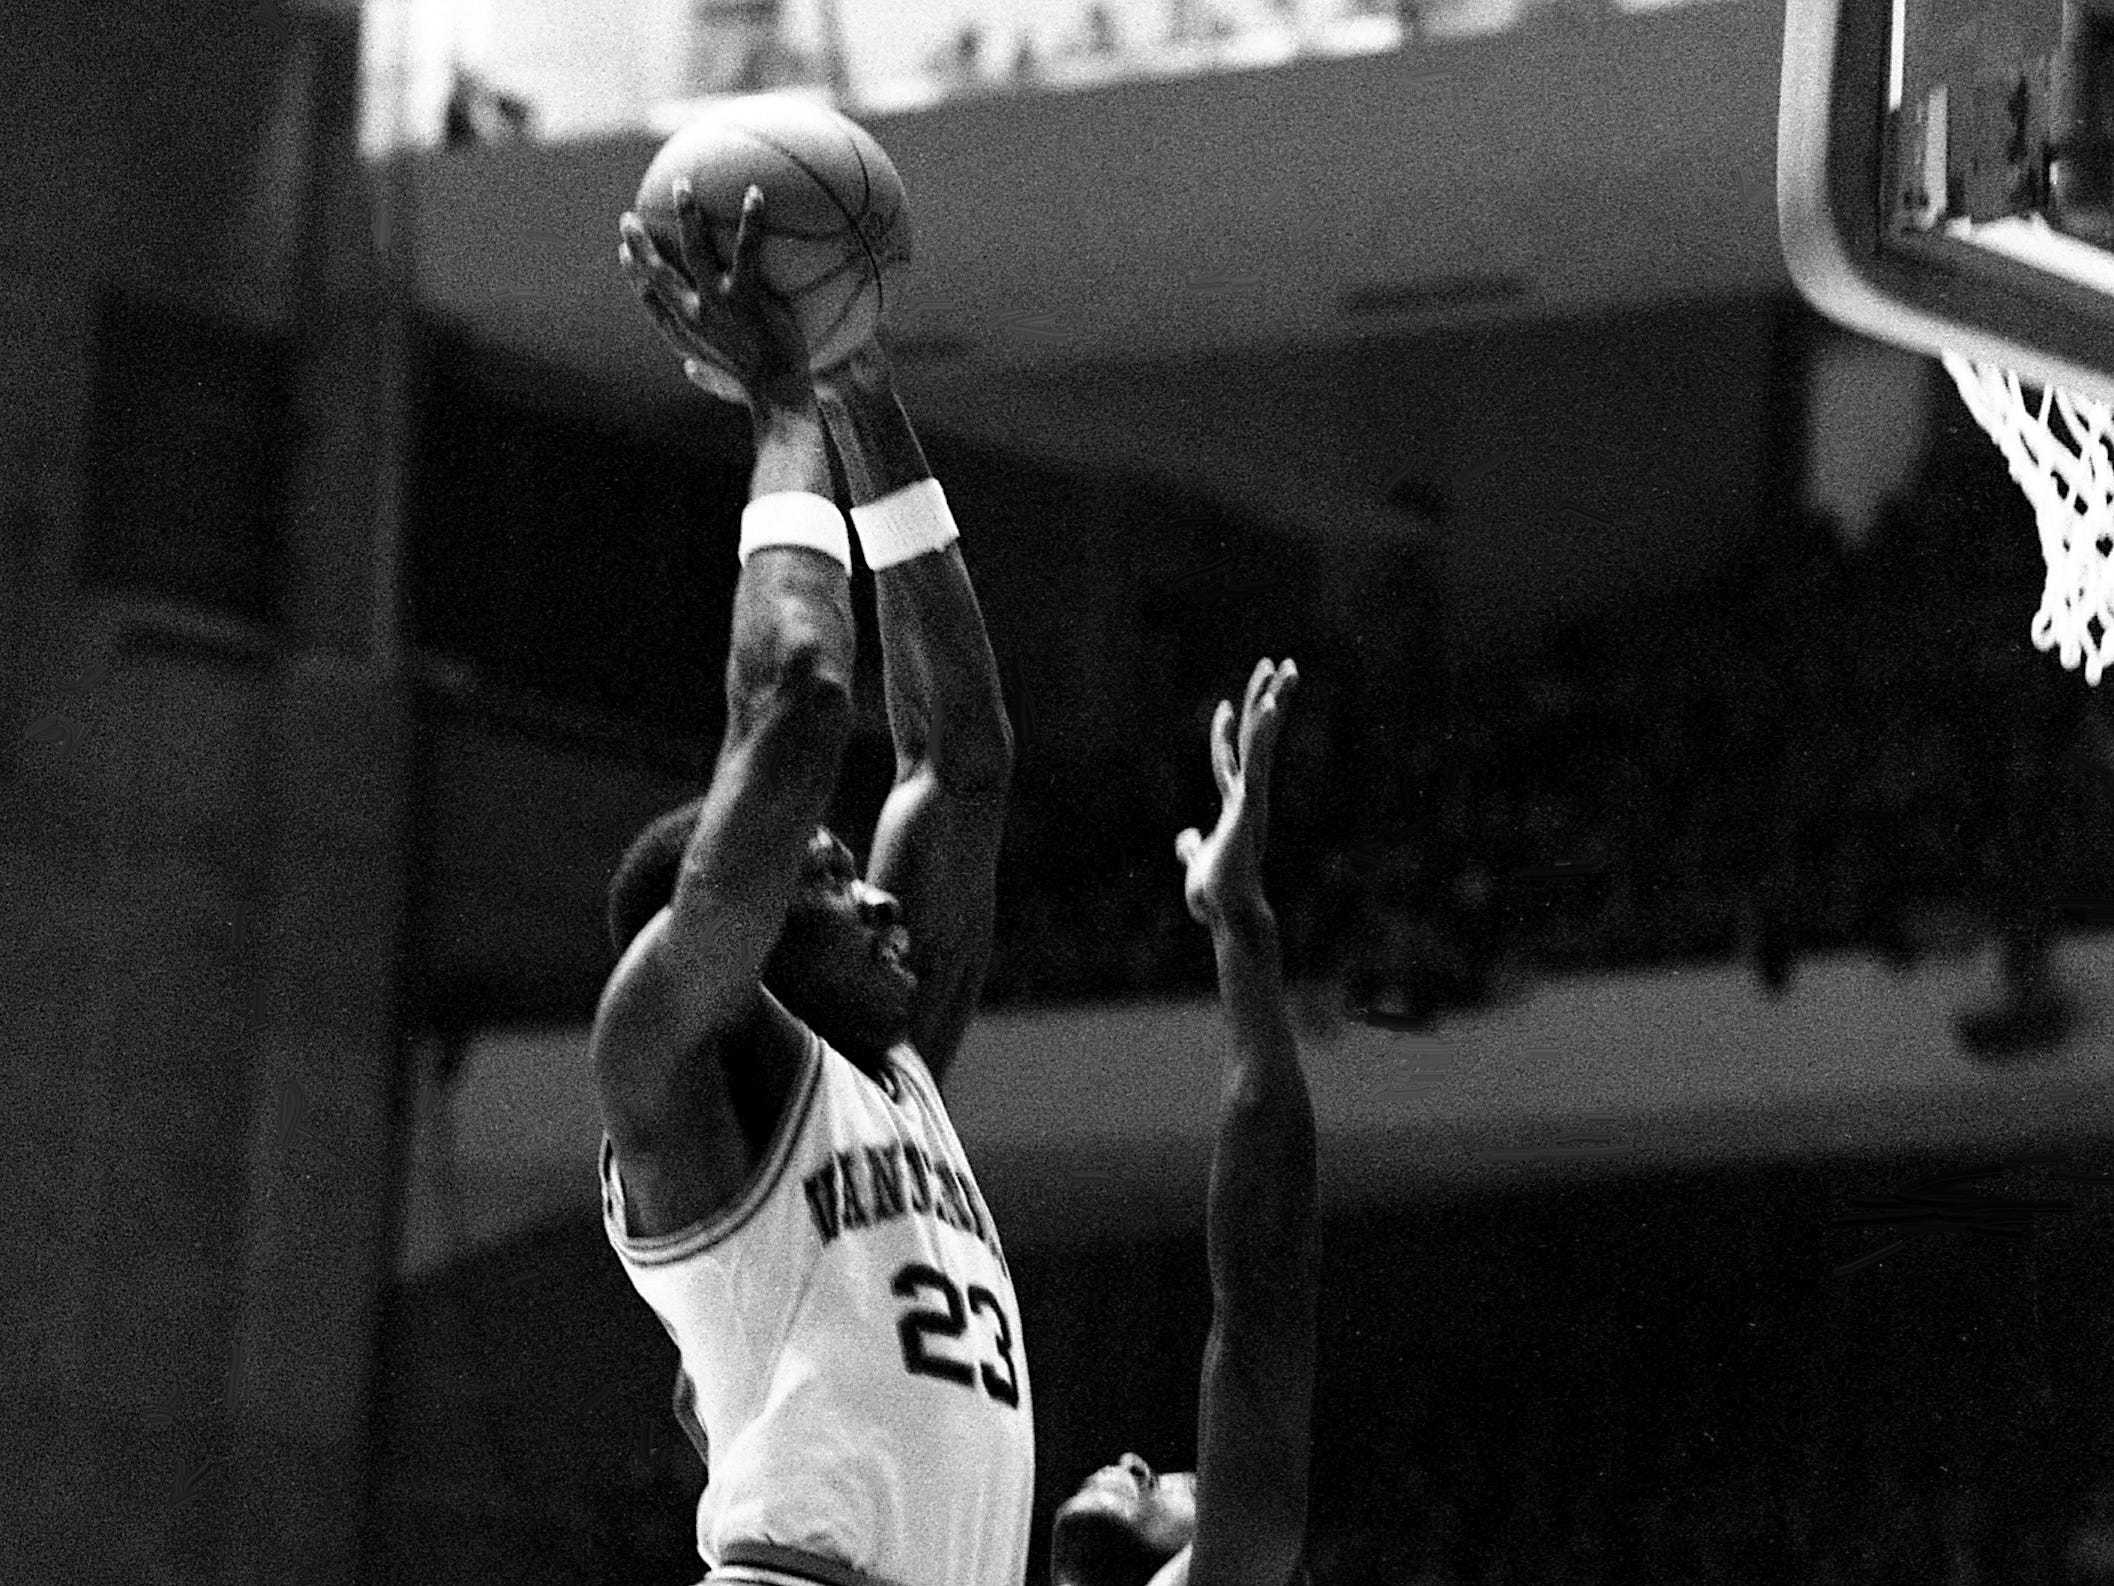 Despite being closely defended by Mississippi State's Wiley Peck, Vanderbilt junior Charles Davis (23) shoots for two of his 16 points in the Commodores' 70-68 victory before a full house of 15,626 fans at Memorial Gym on Feb. 10, 1979.